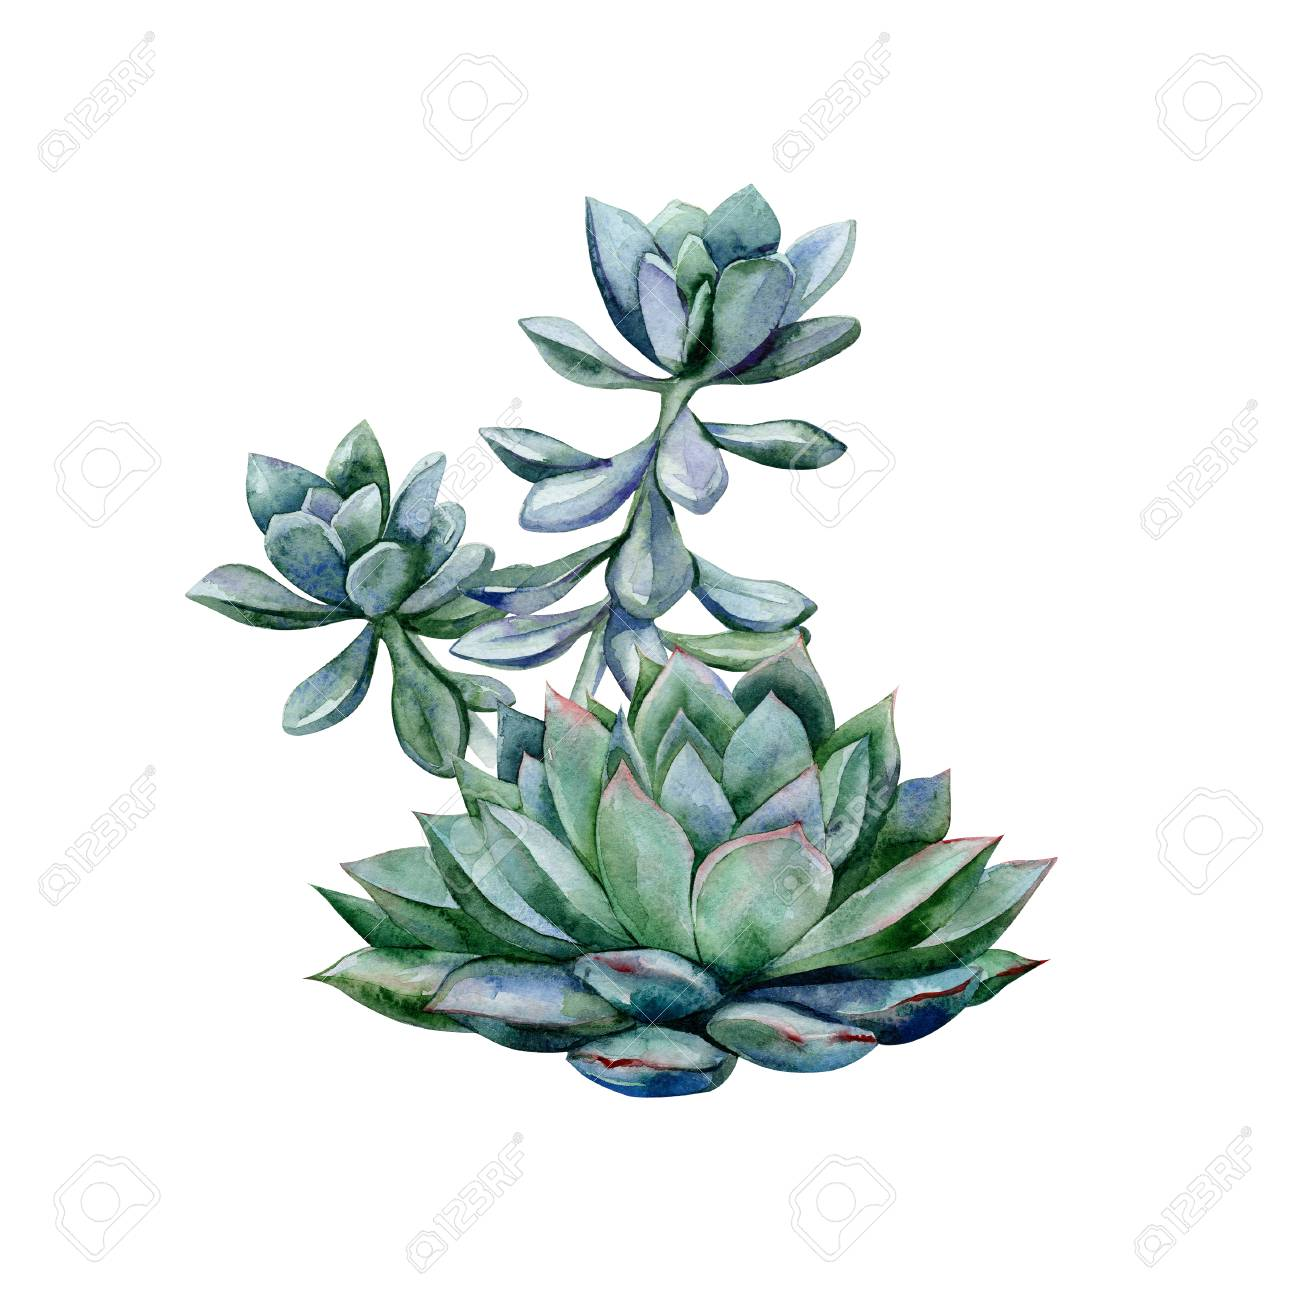 Watercolor Succulents Green Bouquet Echeveria Illustration Stock Photo Picture And Royalty Free Image Image 110949861